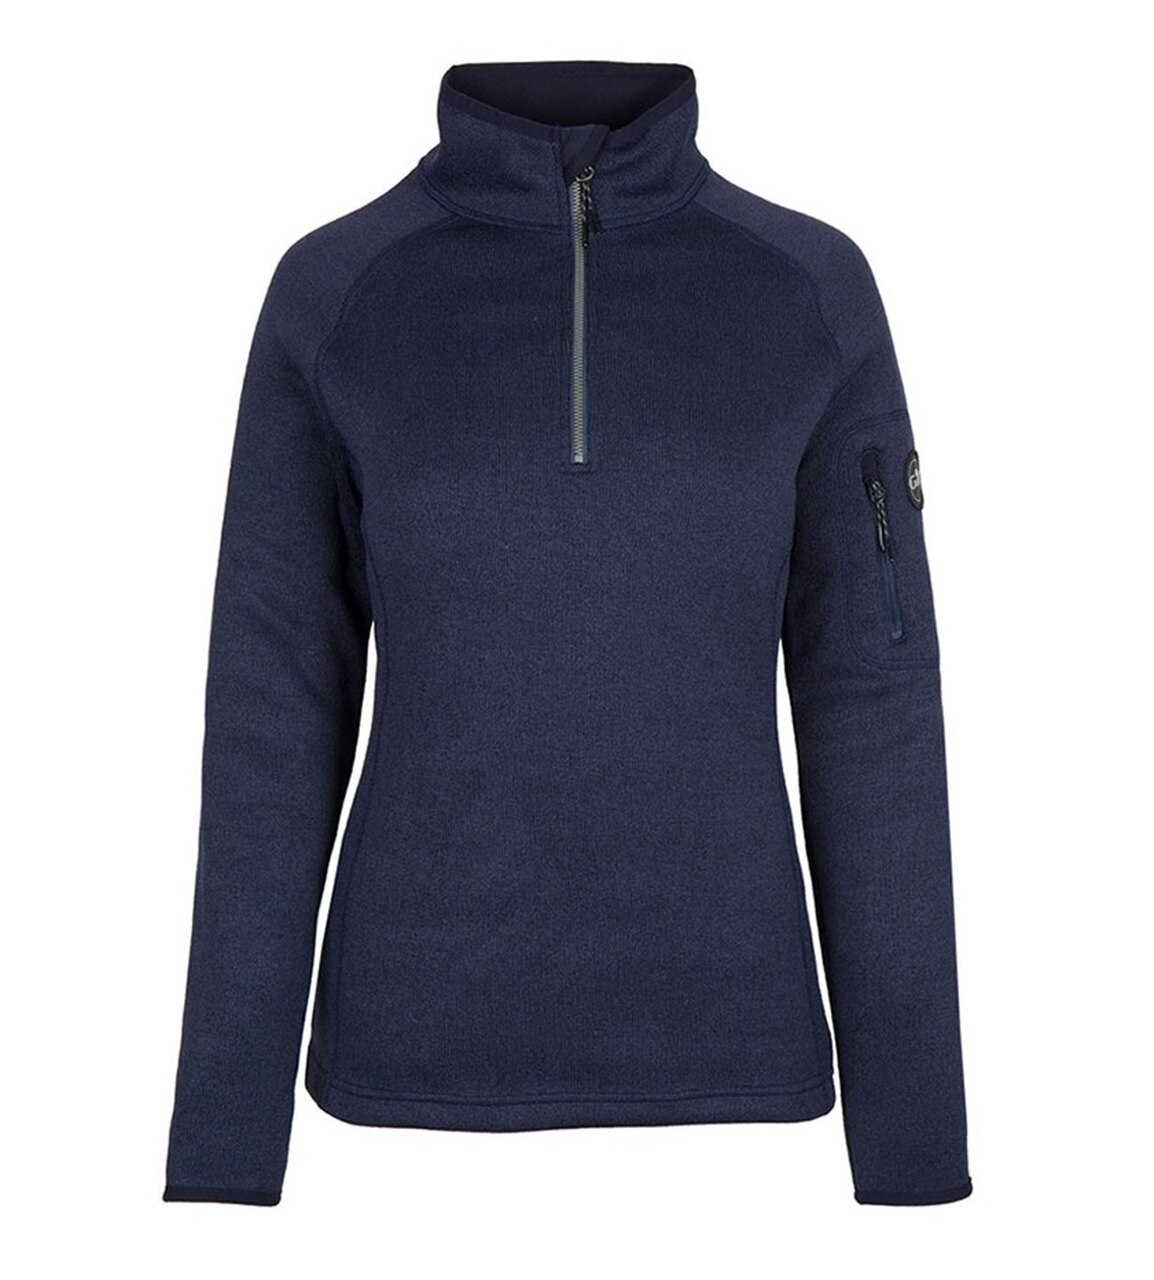 gill-1492-womens-knit-fleece-navy.jpg